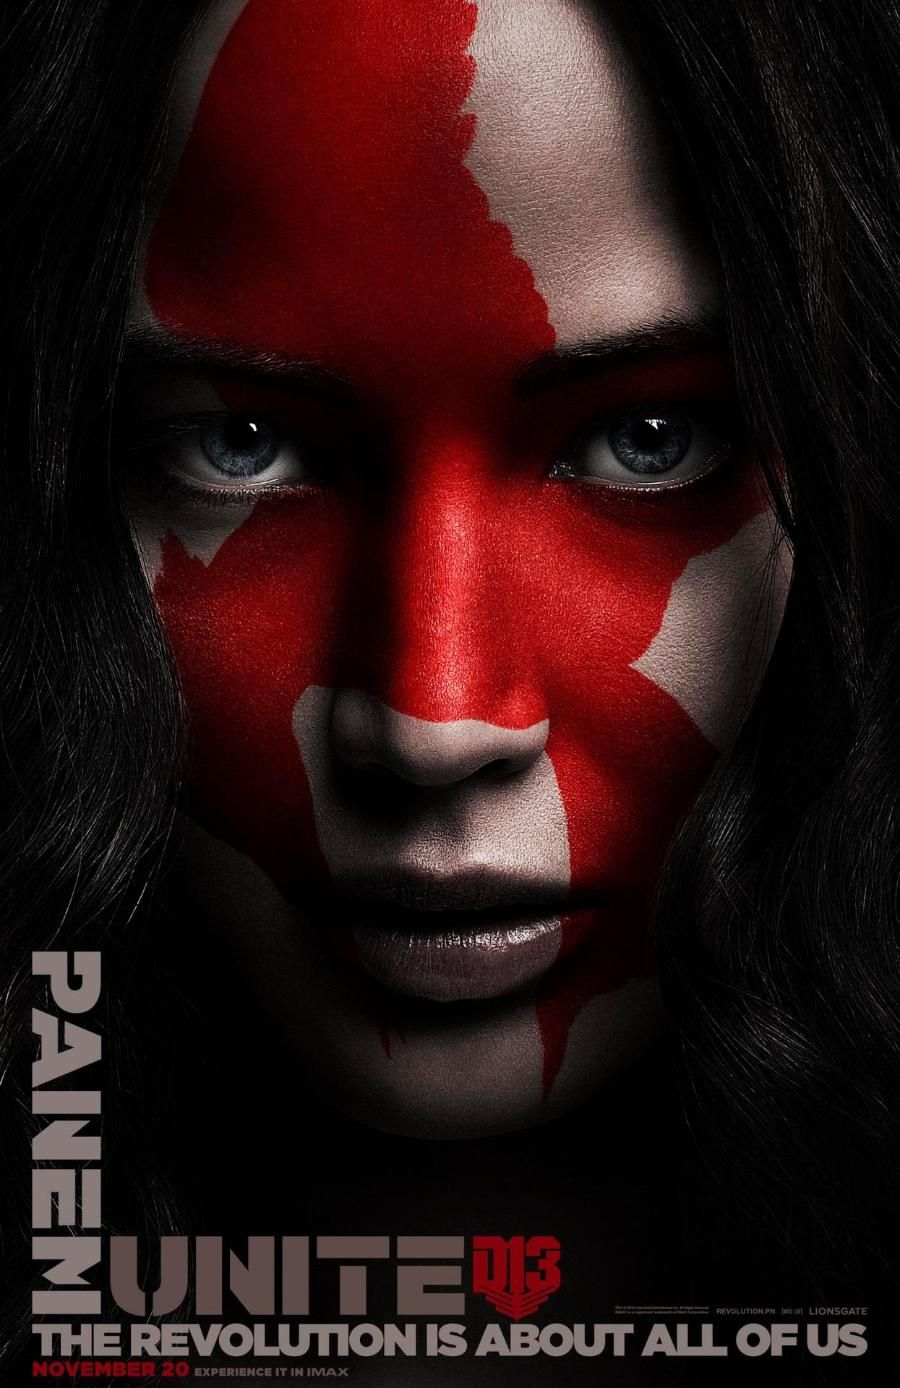 Hunger Games: Mockingjay Part 2 Posters Go to War | Collider